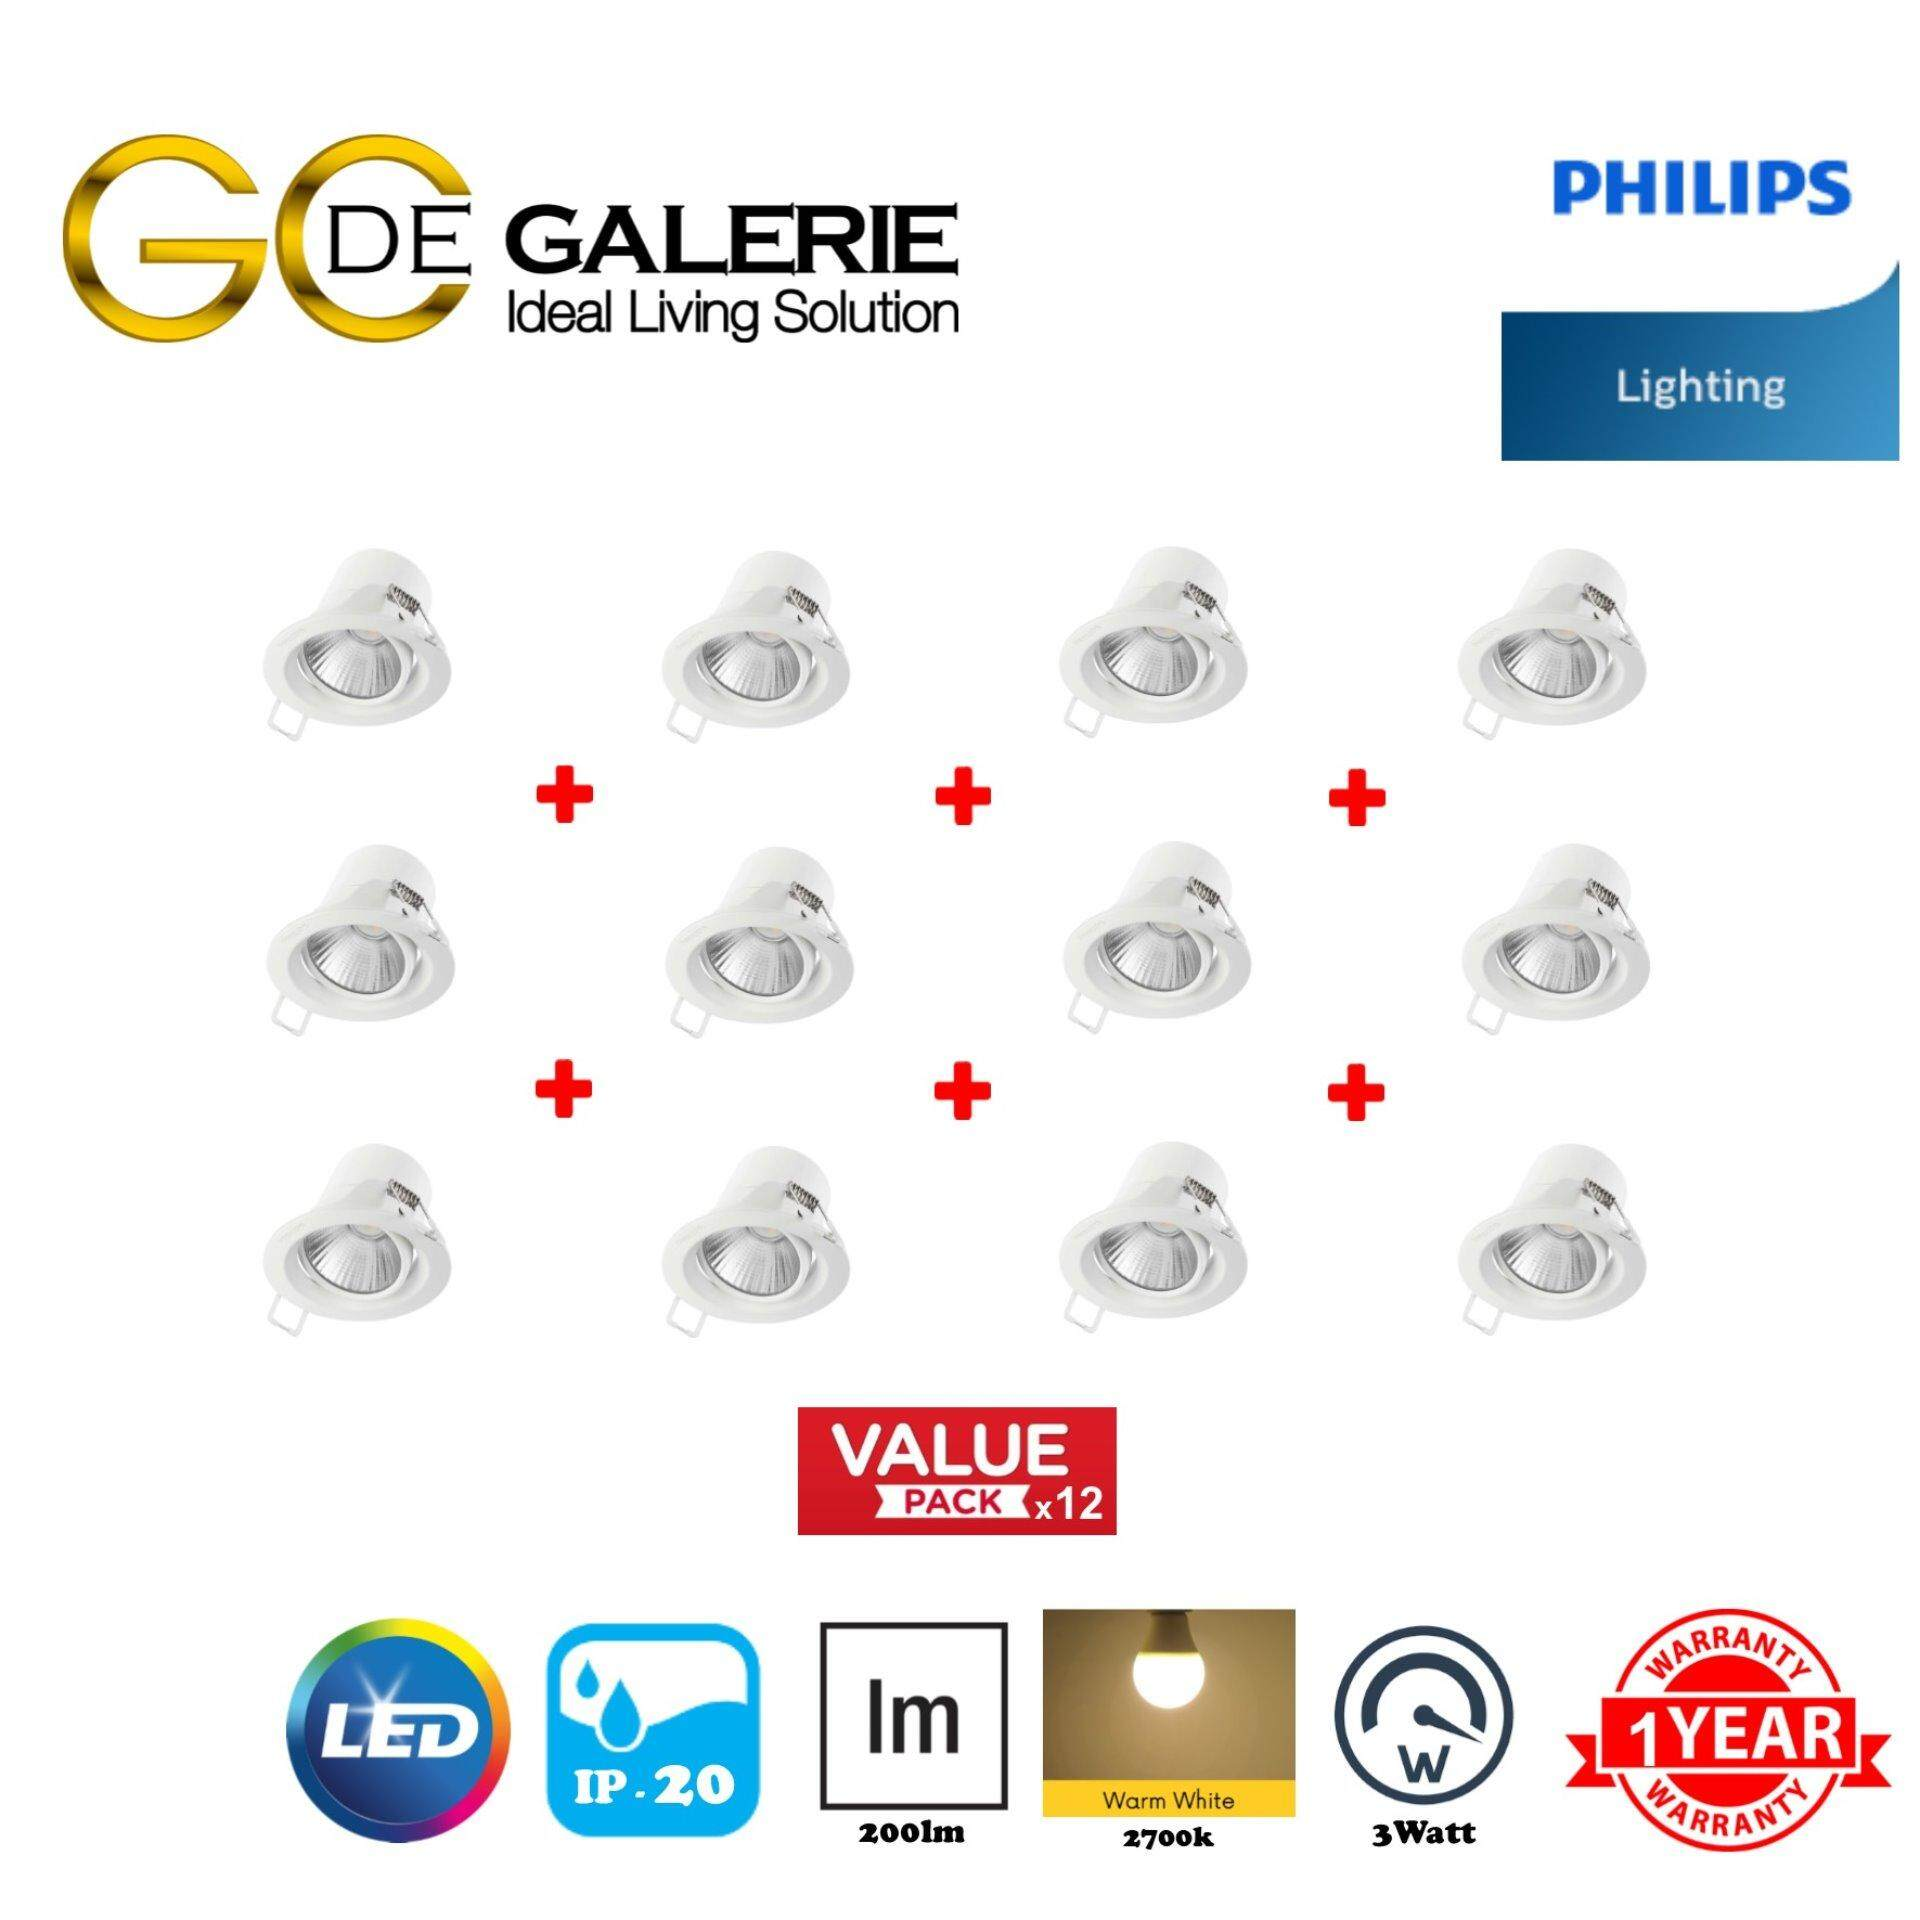 SPOTLIGHT LED KYANITE PHILIPS 59751 070 3W 2700K WH (12 PACK)